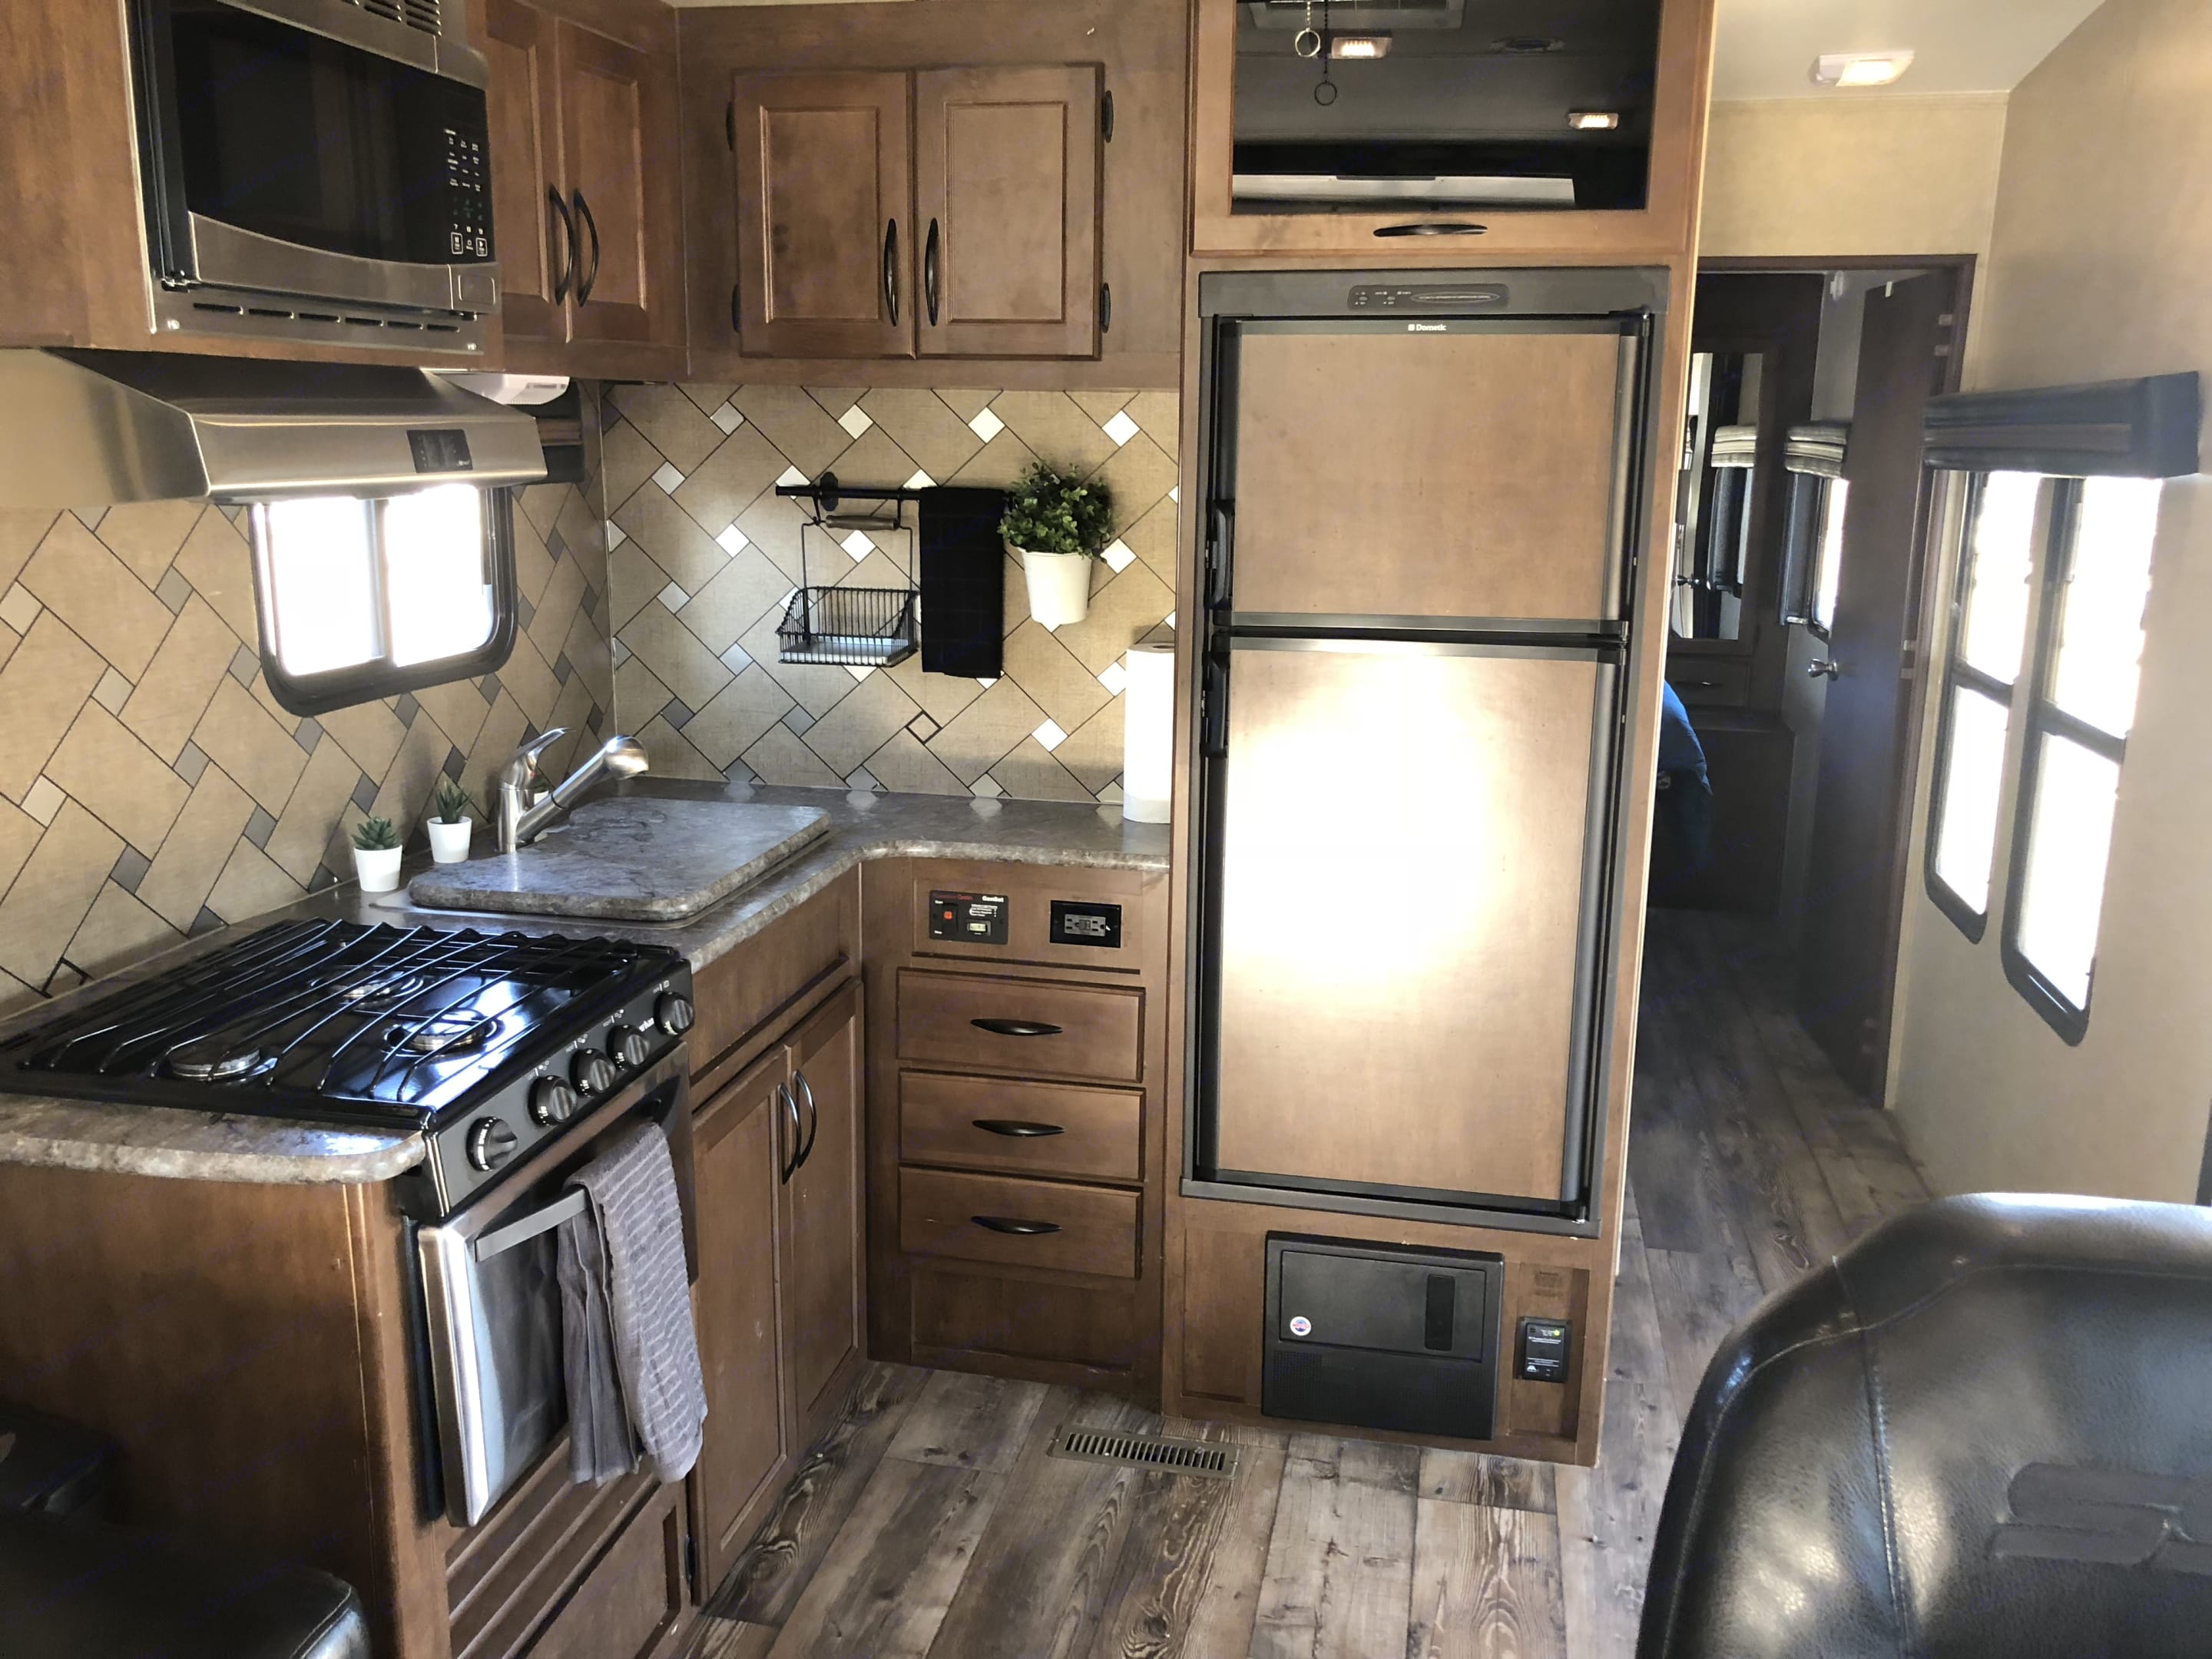 The kitchen includes a refrigerator/freezer, ample counter space and cabinets, a double sink, a three burner range with oven and an overhead microwave.. Pacific Coachworks Sandsport 2016